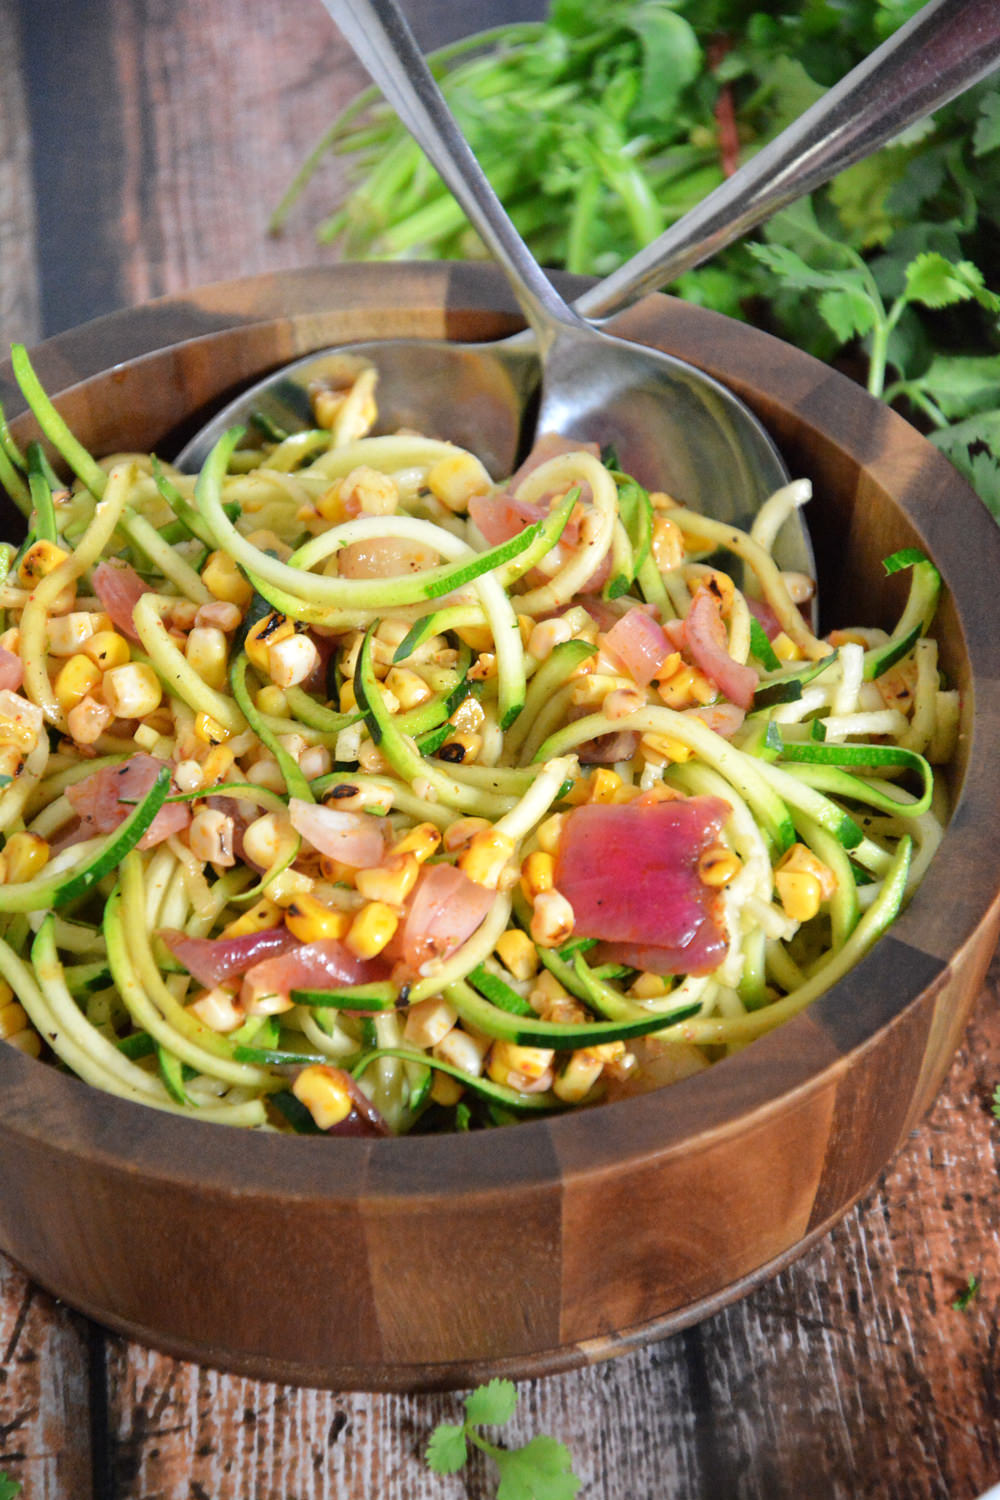 Roasted corn is paired with spiraled zucchini, red onion & tossed with a simple chili lime vinaigrette for a fresh, make ahe